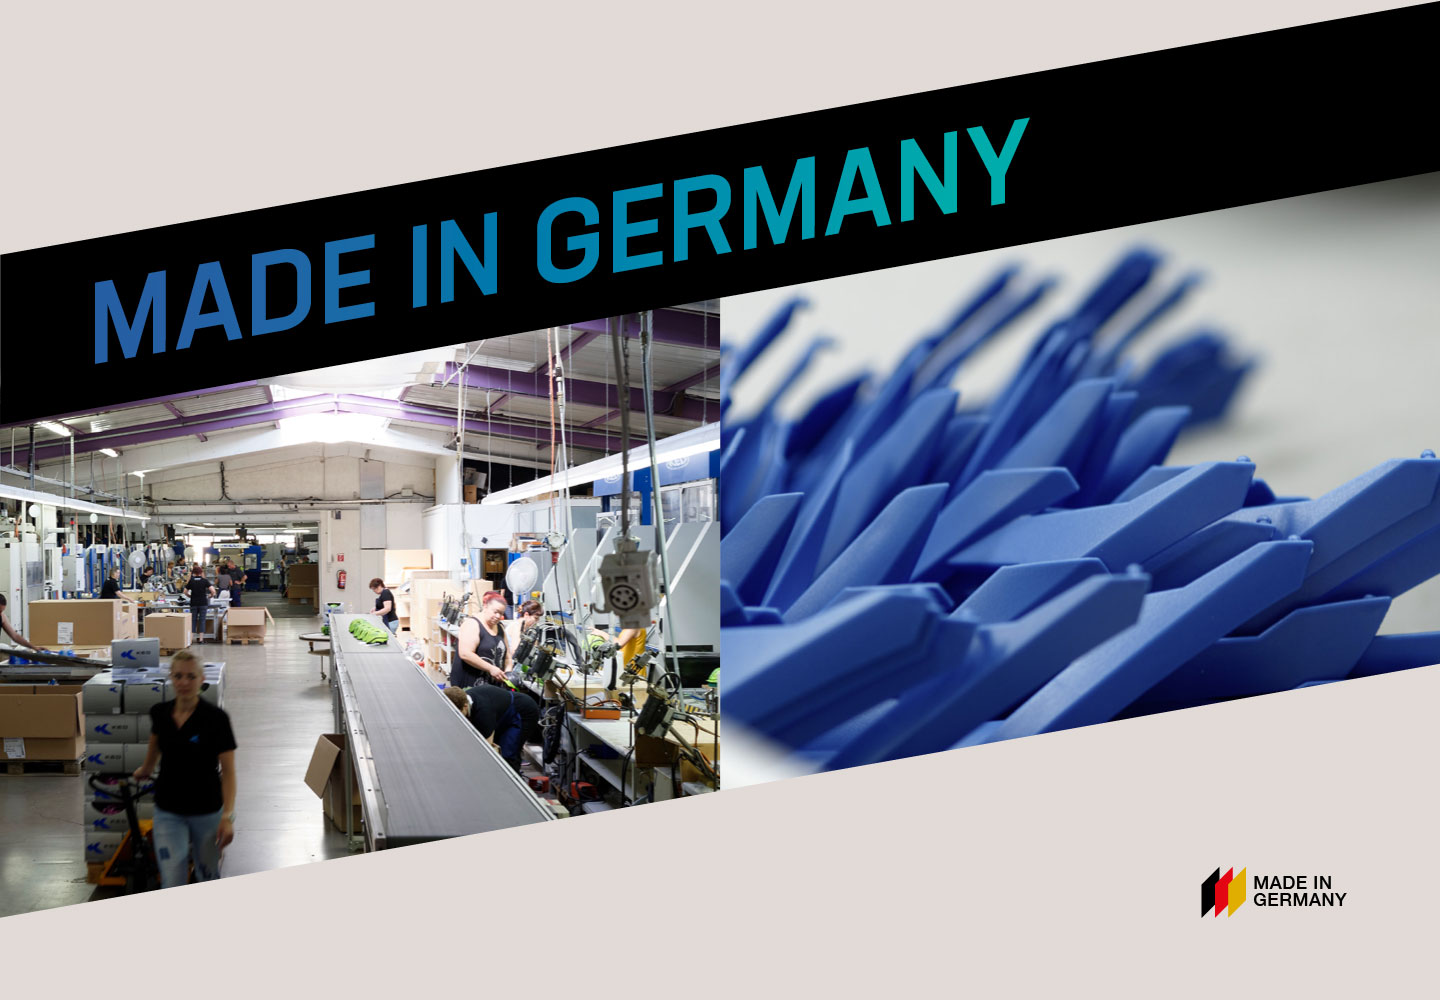 OUR DNA: MADE IN GERMANY